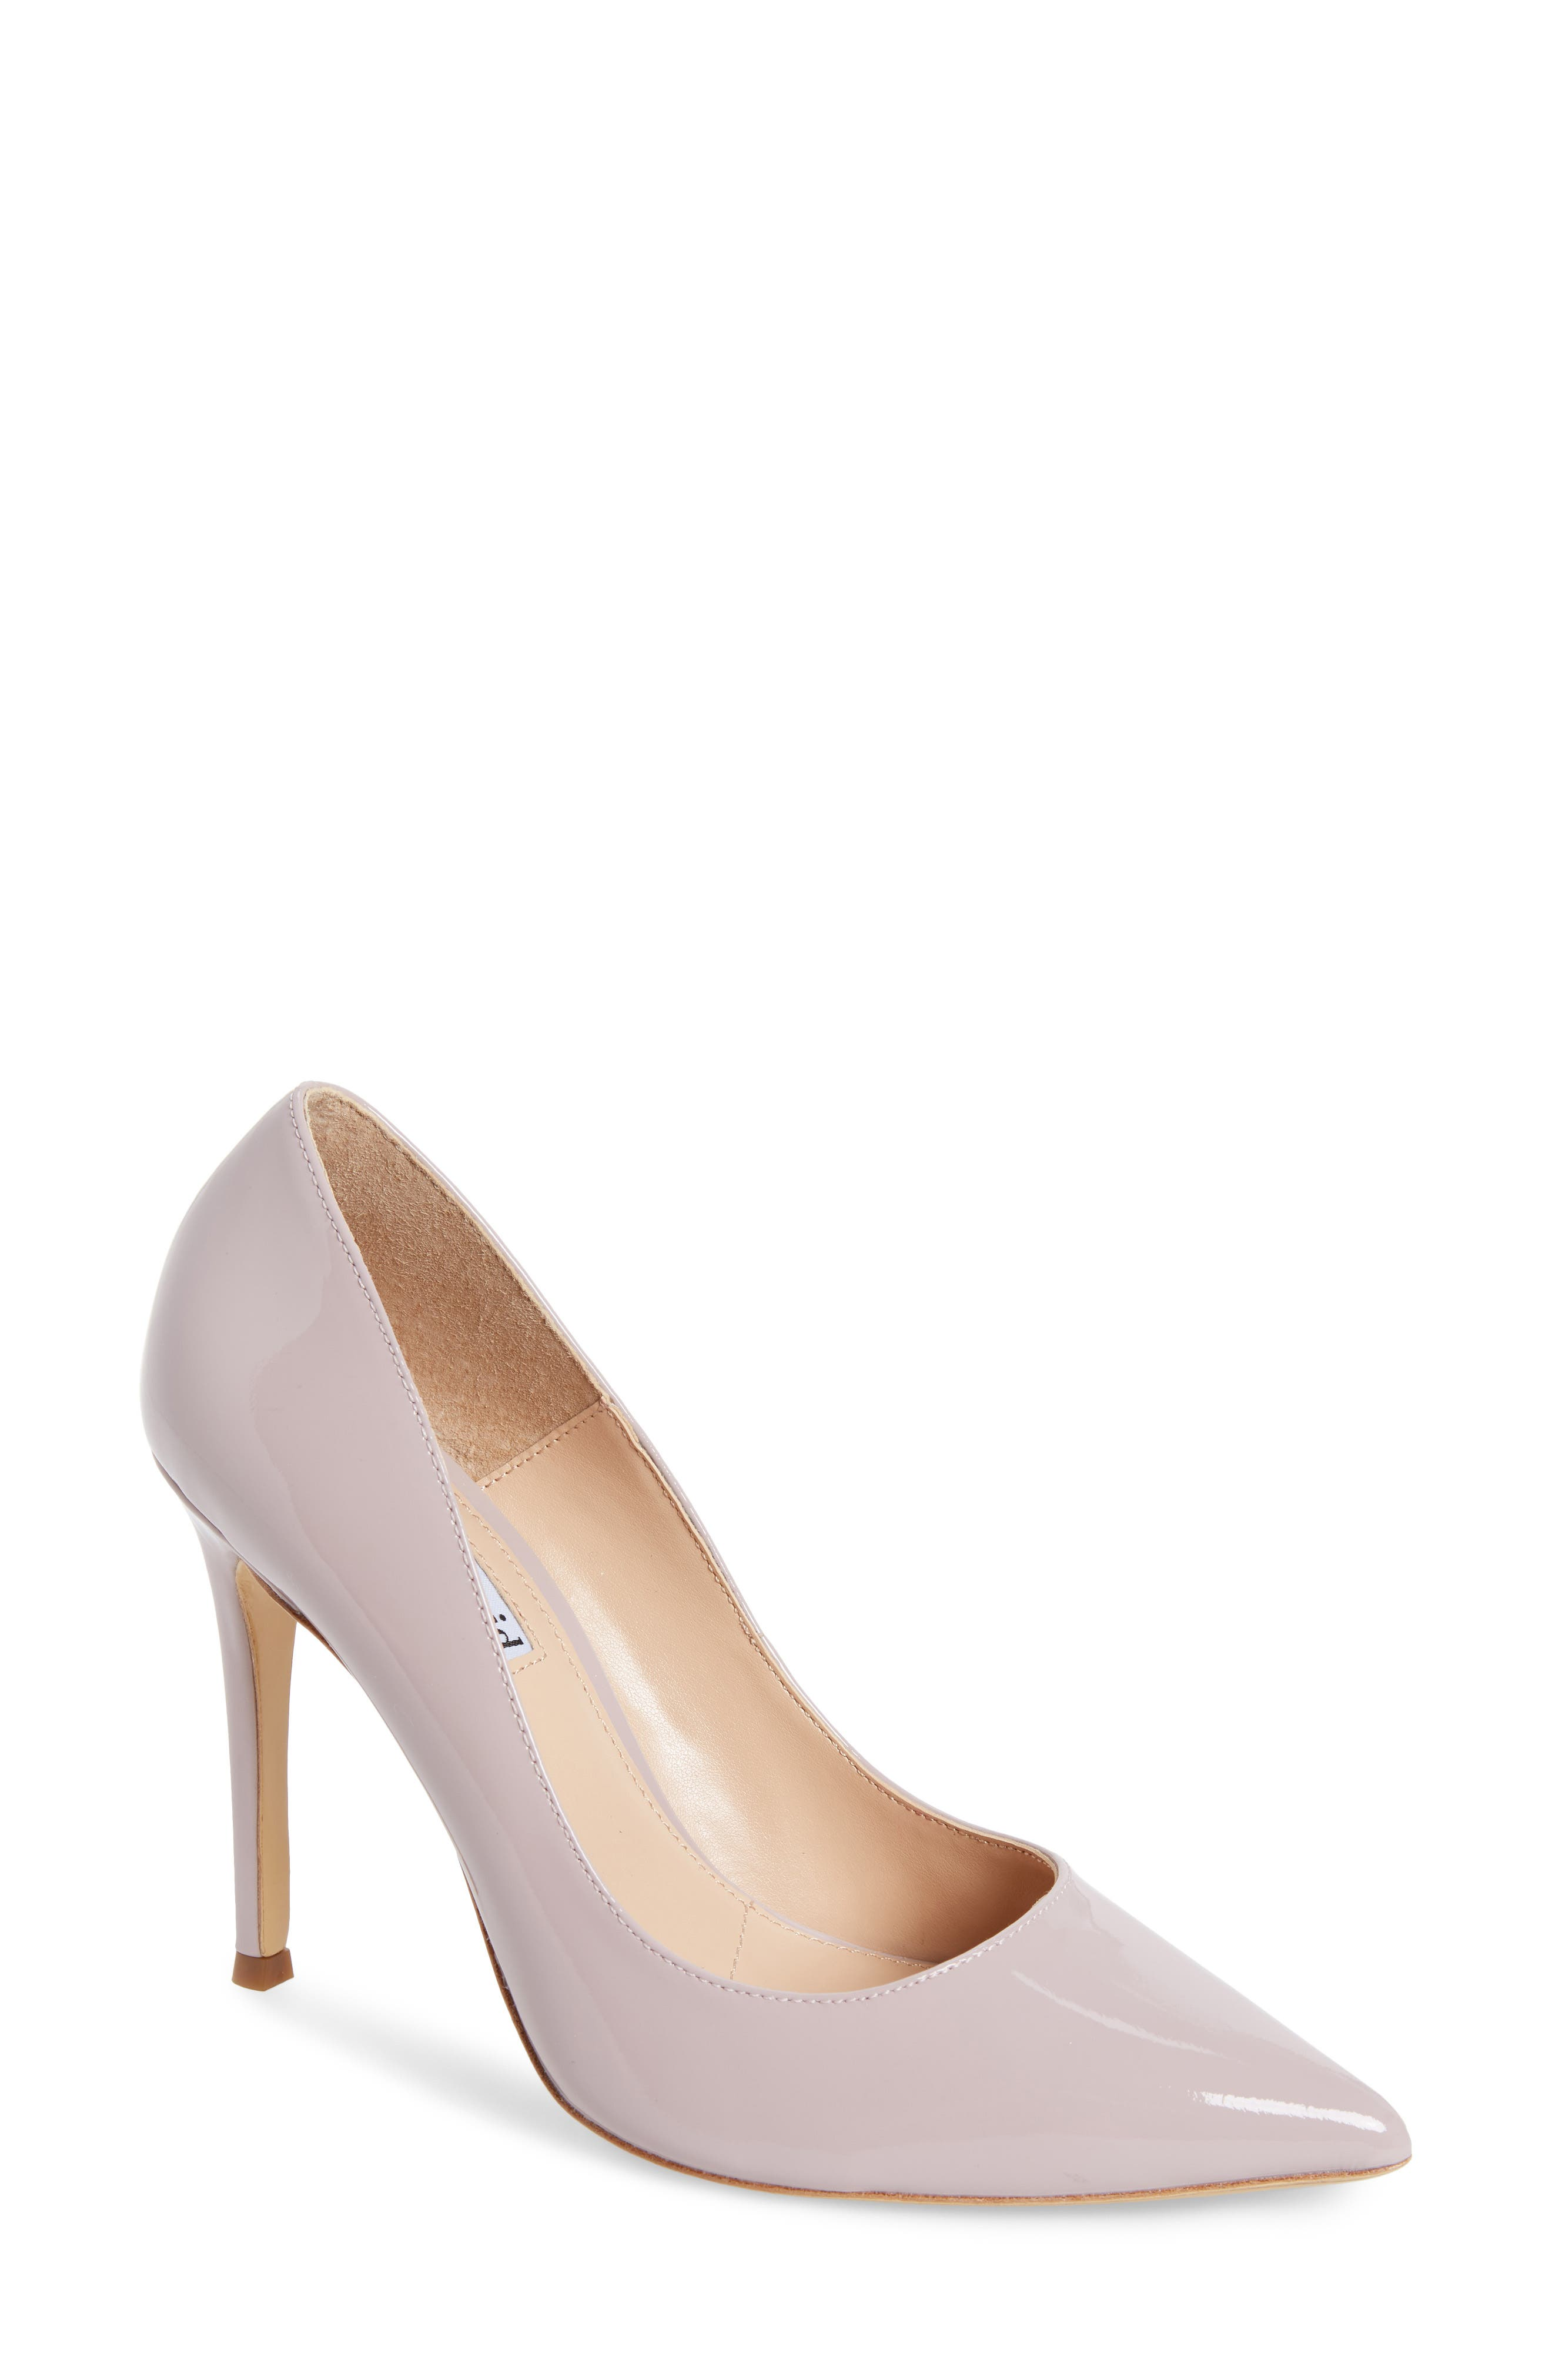 Calessi Pointy Toe Pump,                             Main thumbnail 1, color,                             LAVENDER PATENT LEATHER